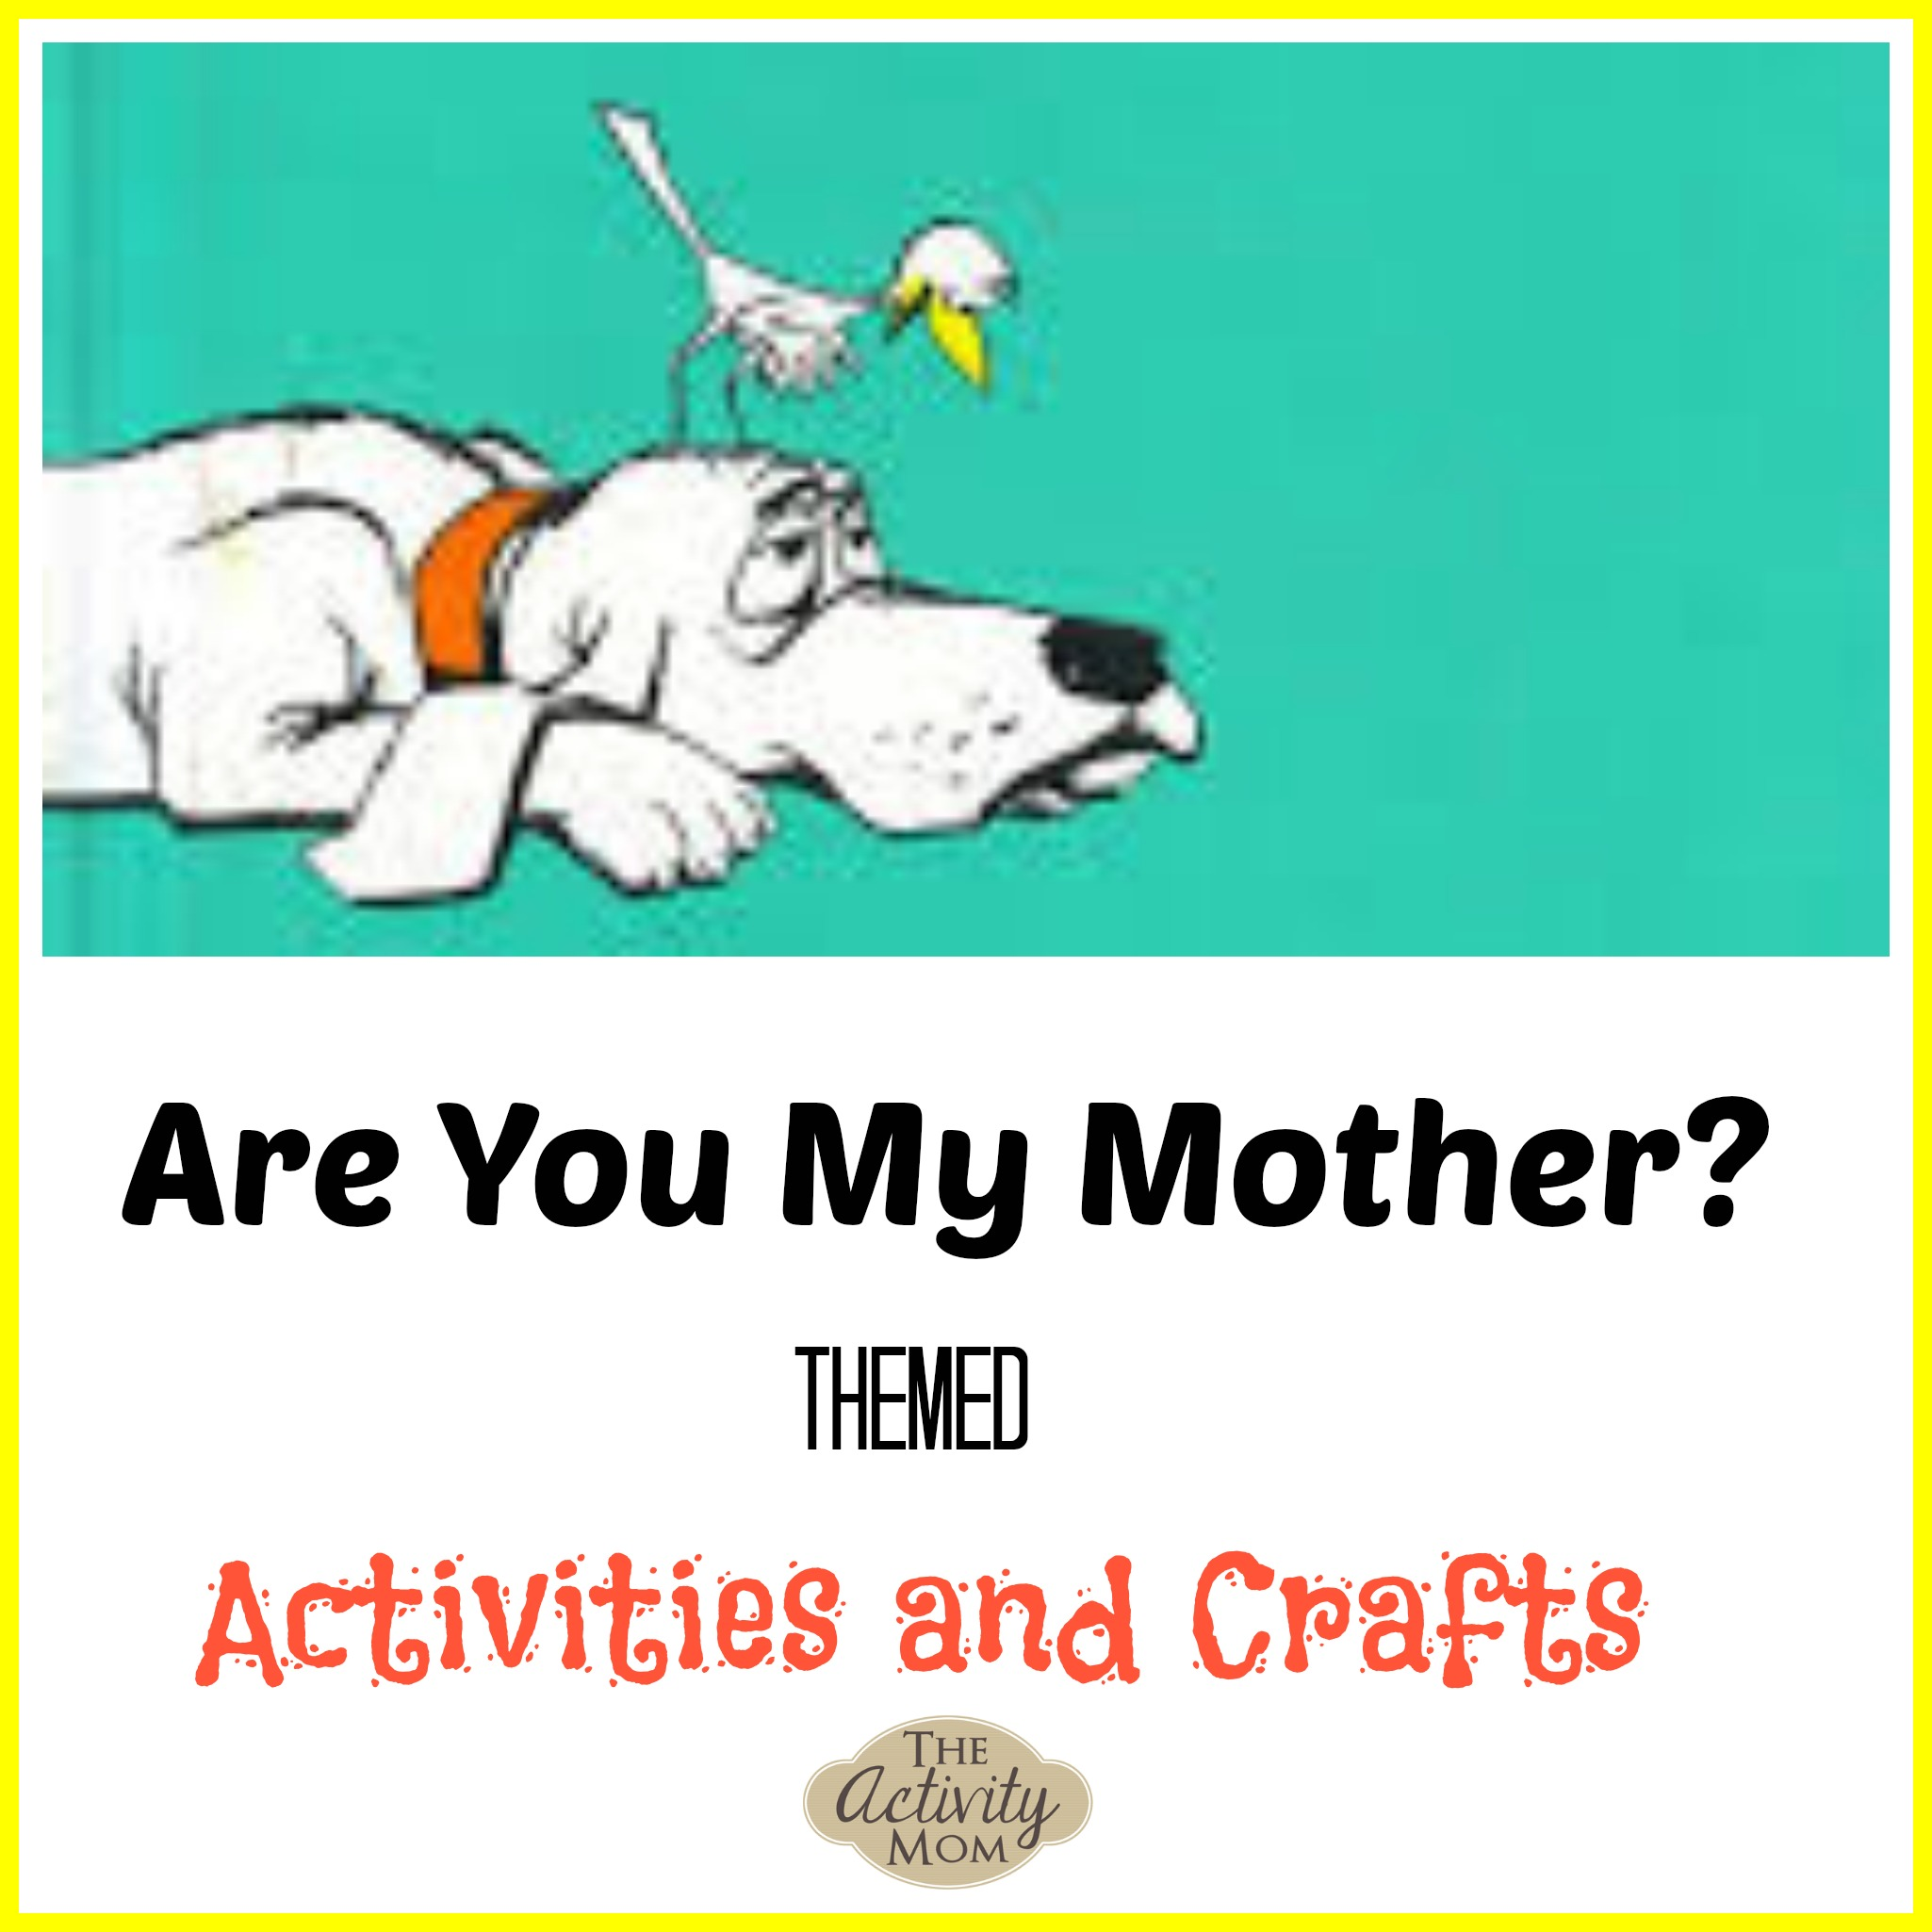 The Activity Mom - Are You My Mother Themed Activities - The ...